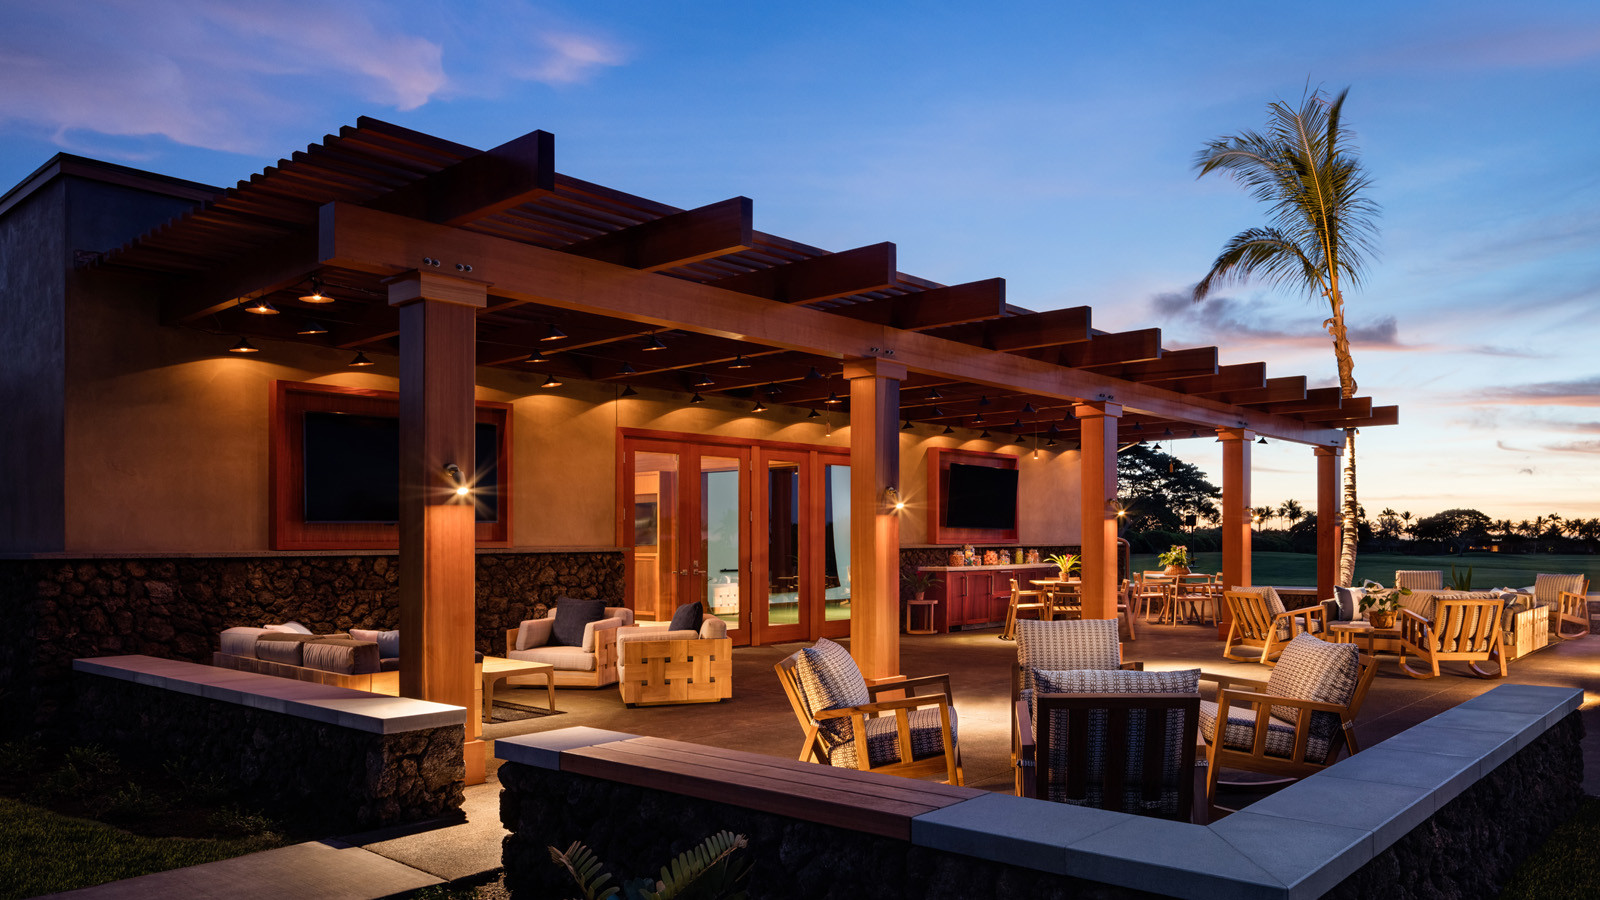 news-main-four-seasons-resort-hualalai-launches-hualalai-golf-hale.1578921292.jpg